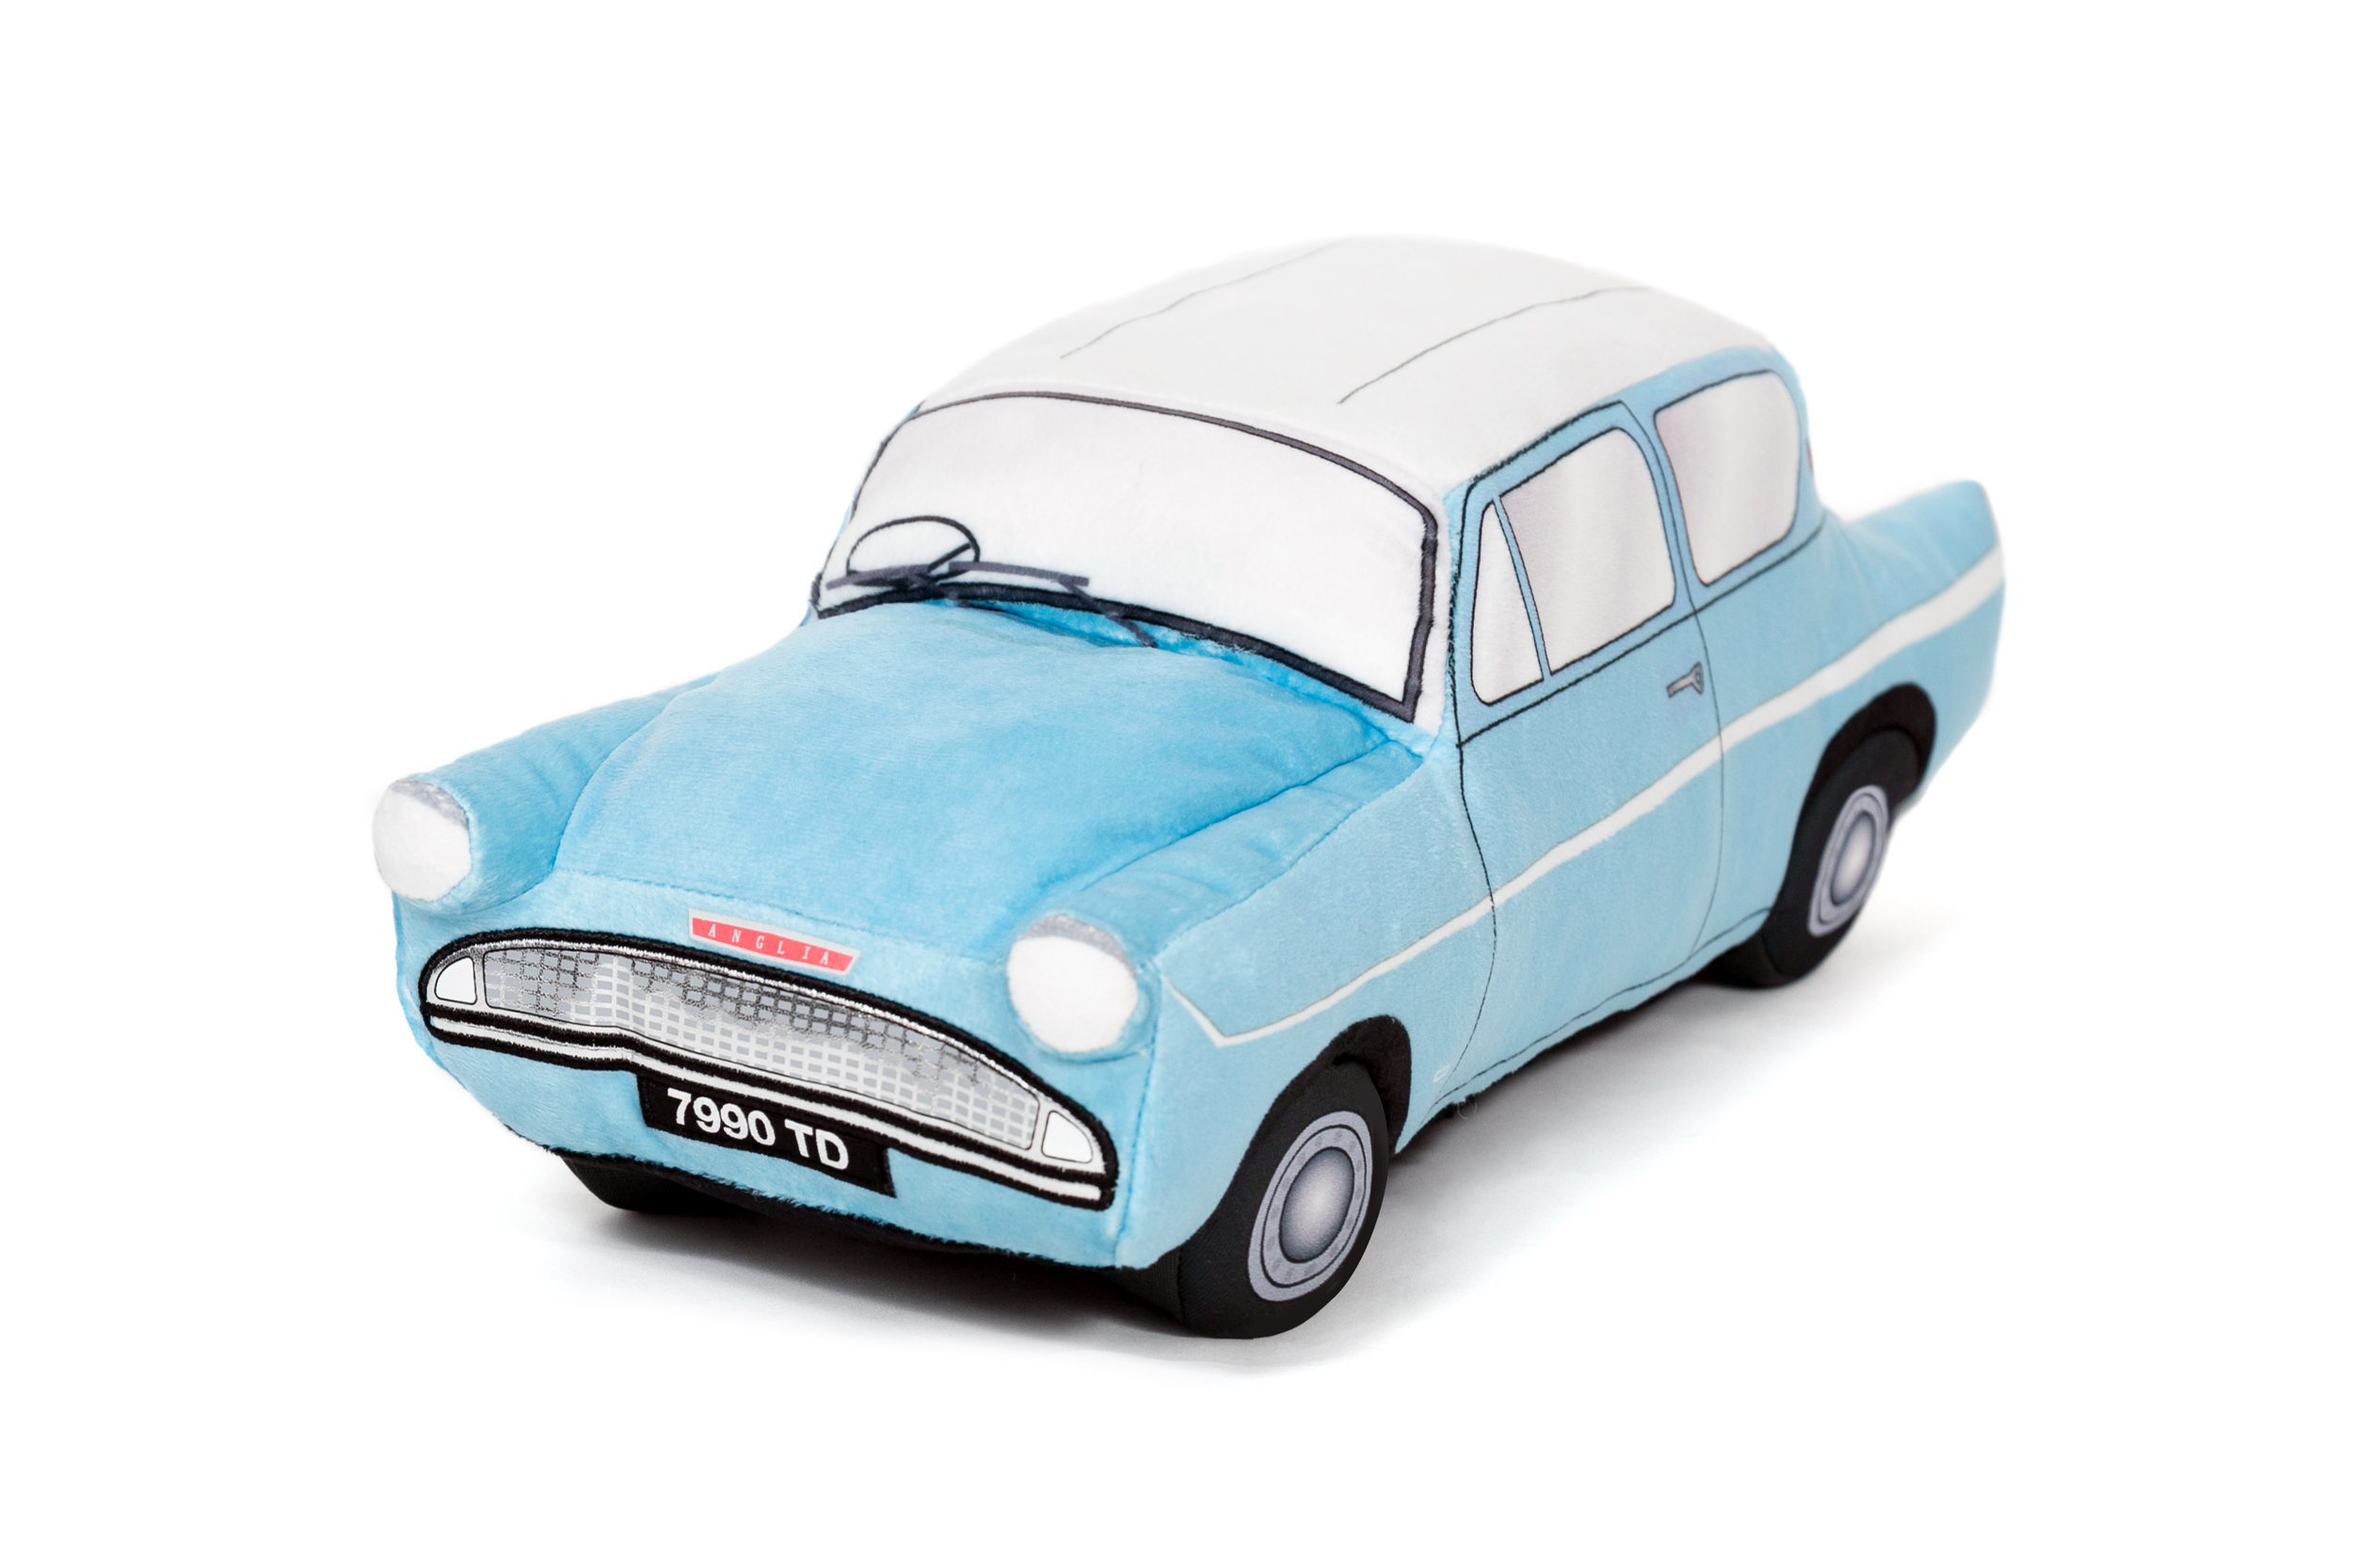 This Ford Anglia may not have an invisibility booster, but it sure is cozy.